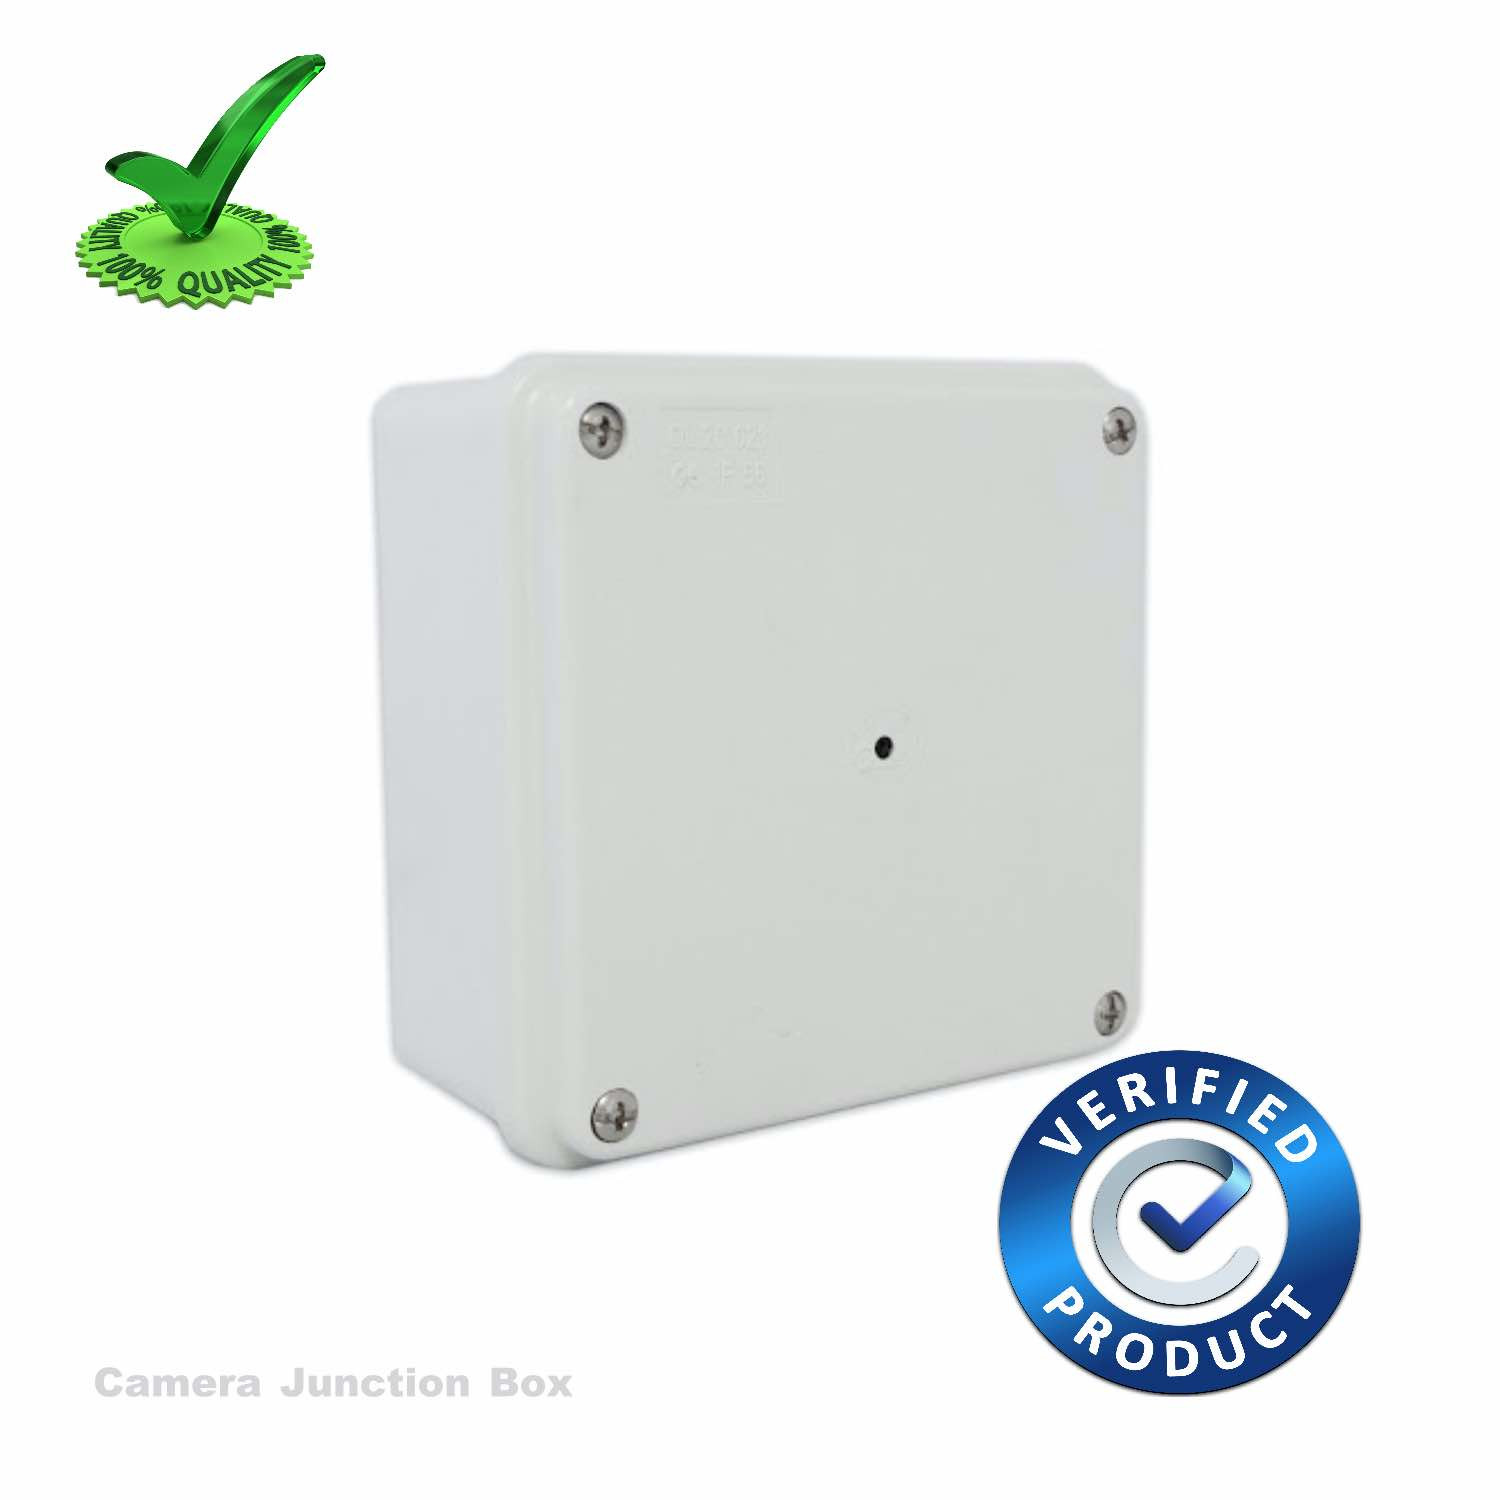 Cctv Camera Junction Plastic Box